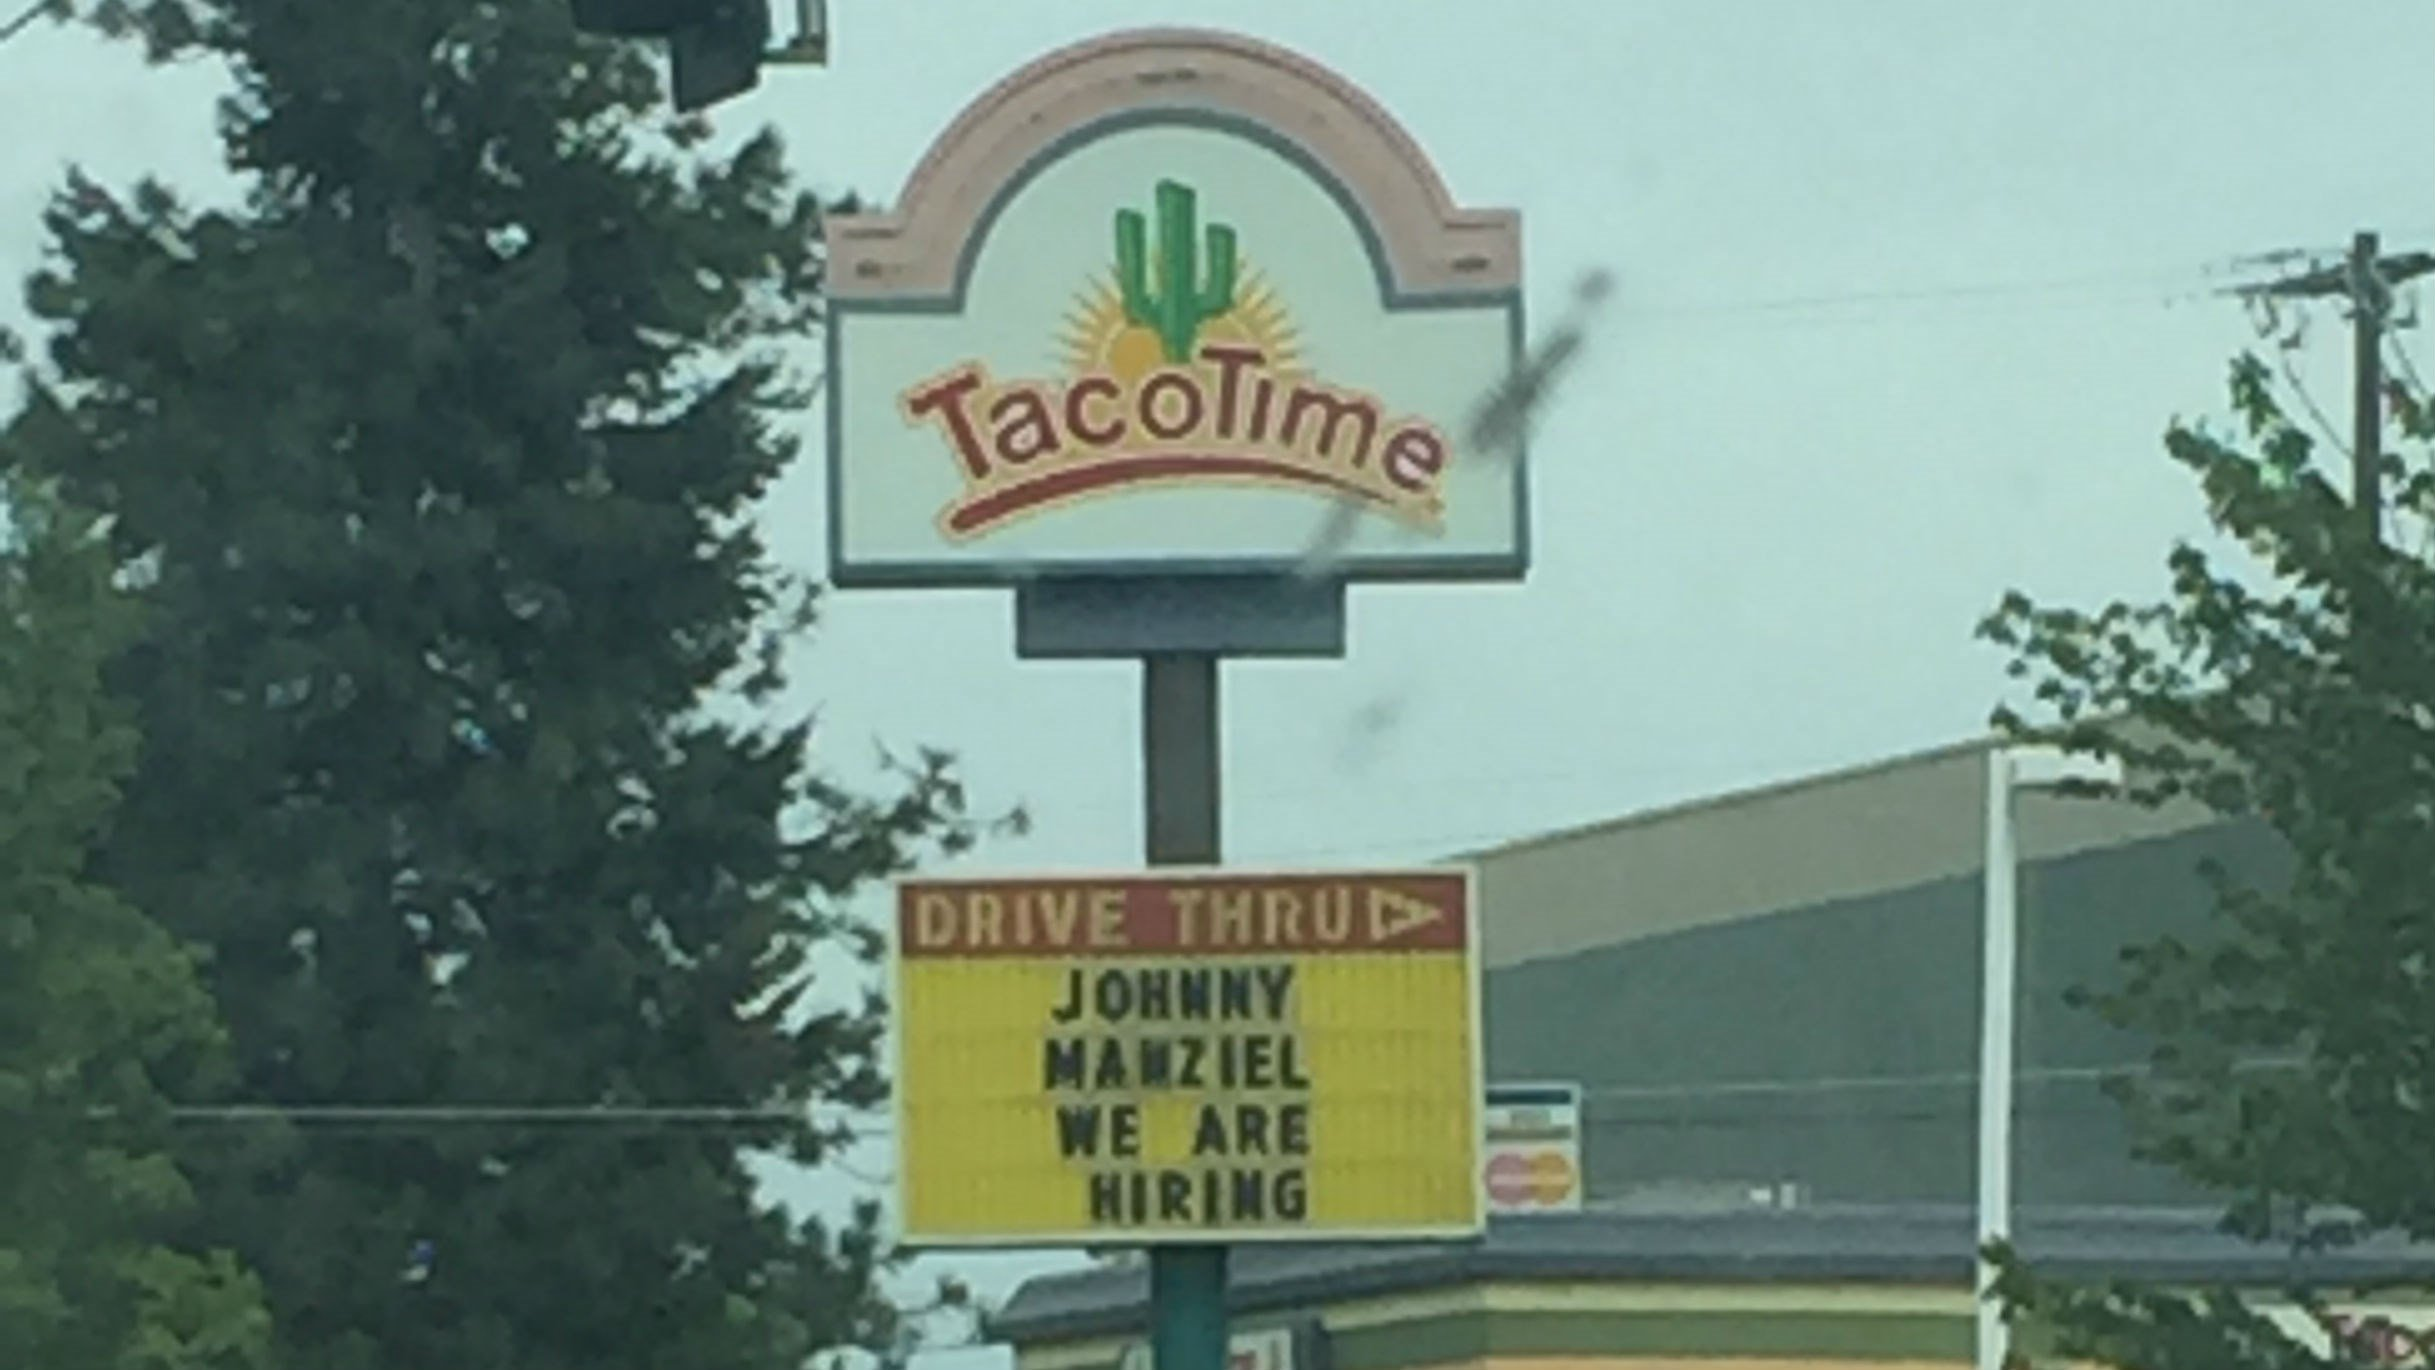 A local Taco Time offering Manziel a job